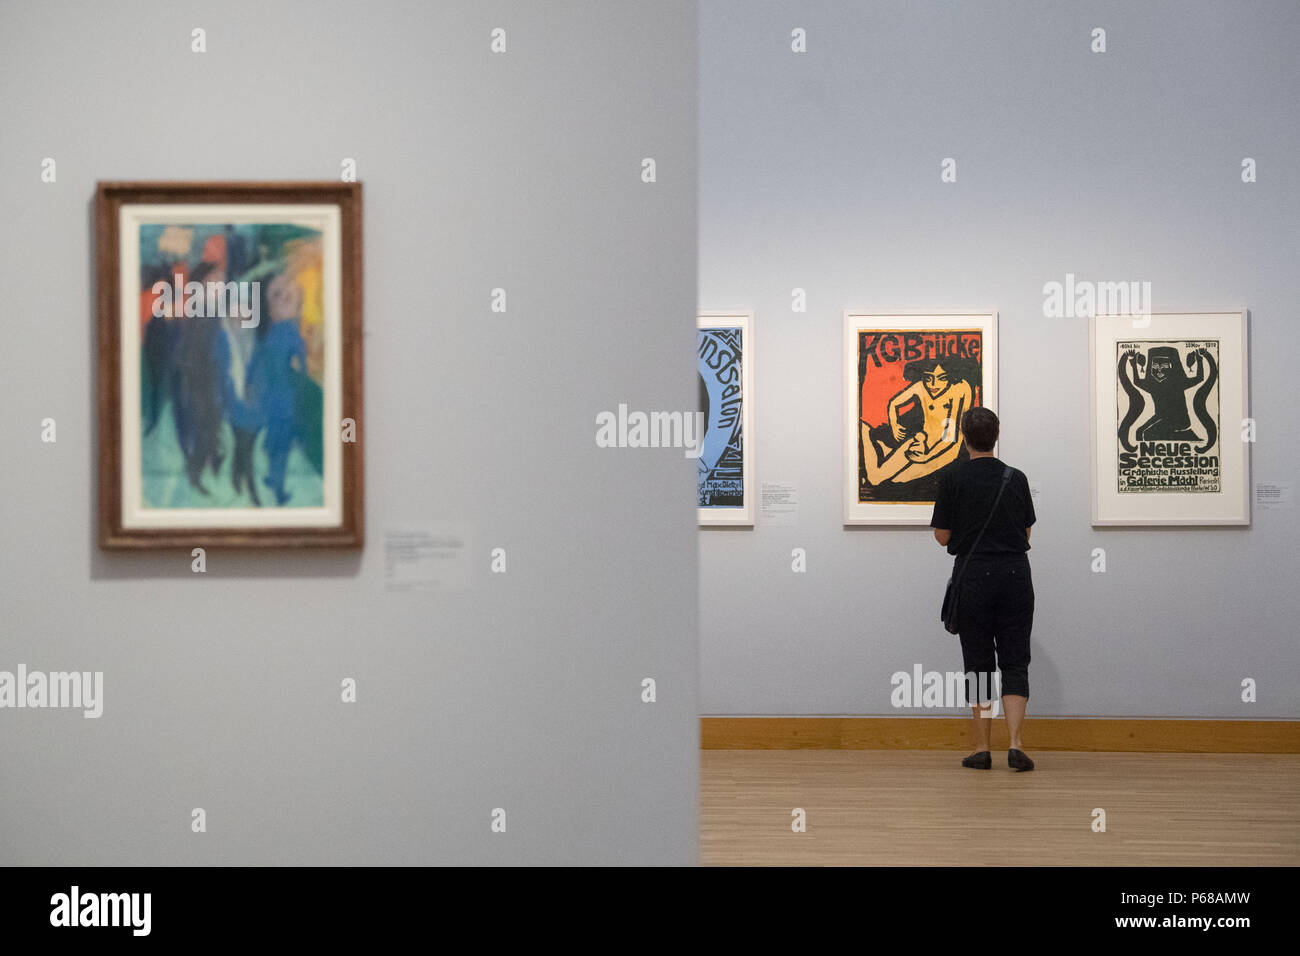 Stuttgart, Germany. 28th June, 2018. A woman attending a press conference for the exhibition 'Ernst Ludwig Kirchner. Die unbekannte Sammlung' looking at art by Ernst Ludwig Kirchner at the Staatsgalerie. Staatsgalerie is set to show art by Kirchner from 29 June to 21 October 2018. Credit: Marijan Murat/dpa/Alamy Live News - Stock Image